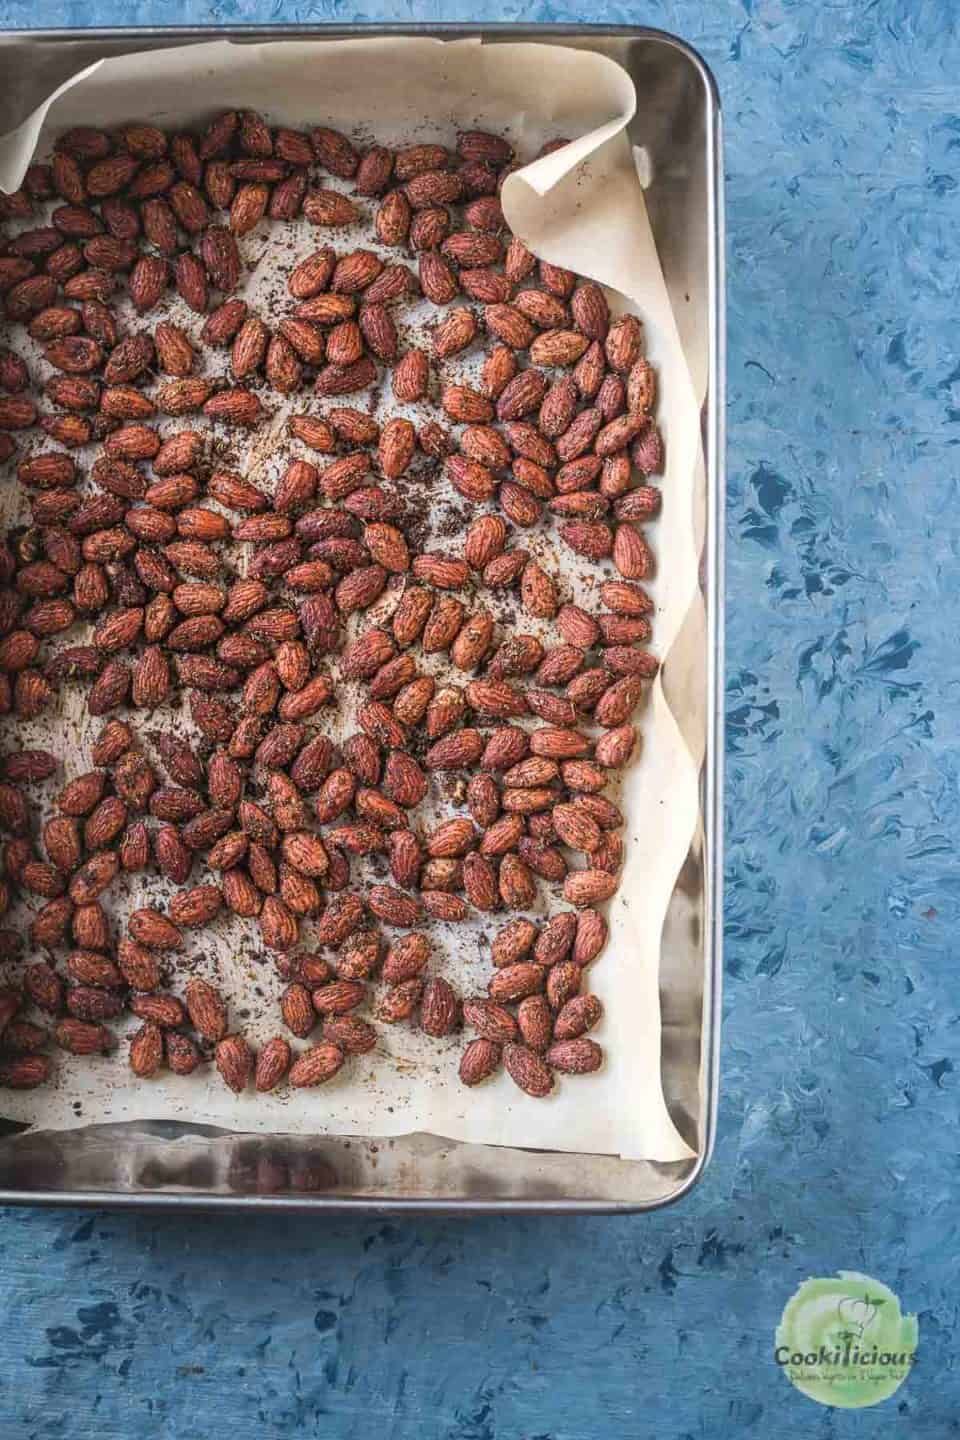 Smoky Spicy Garlic Roasted Almonds on a tray freshly out of the oven